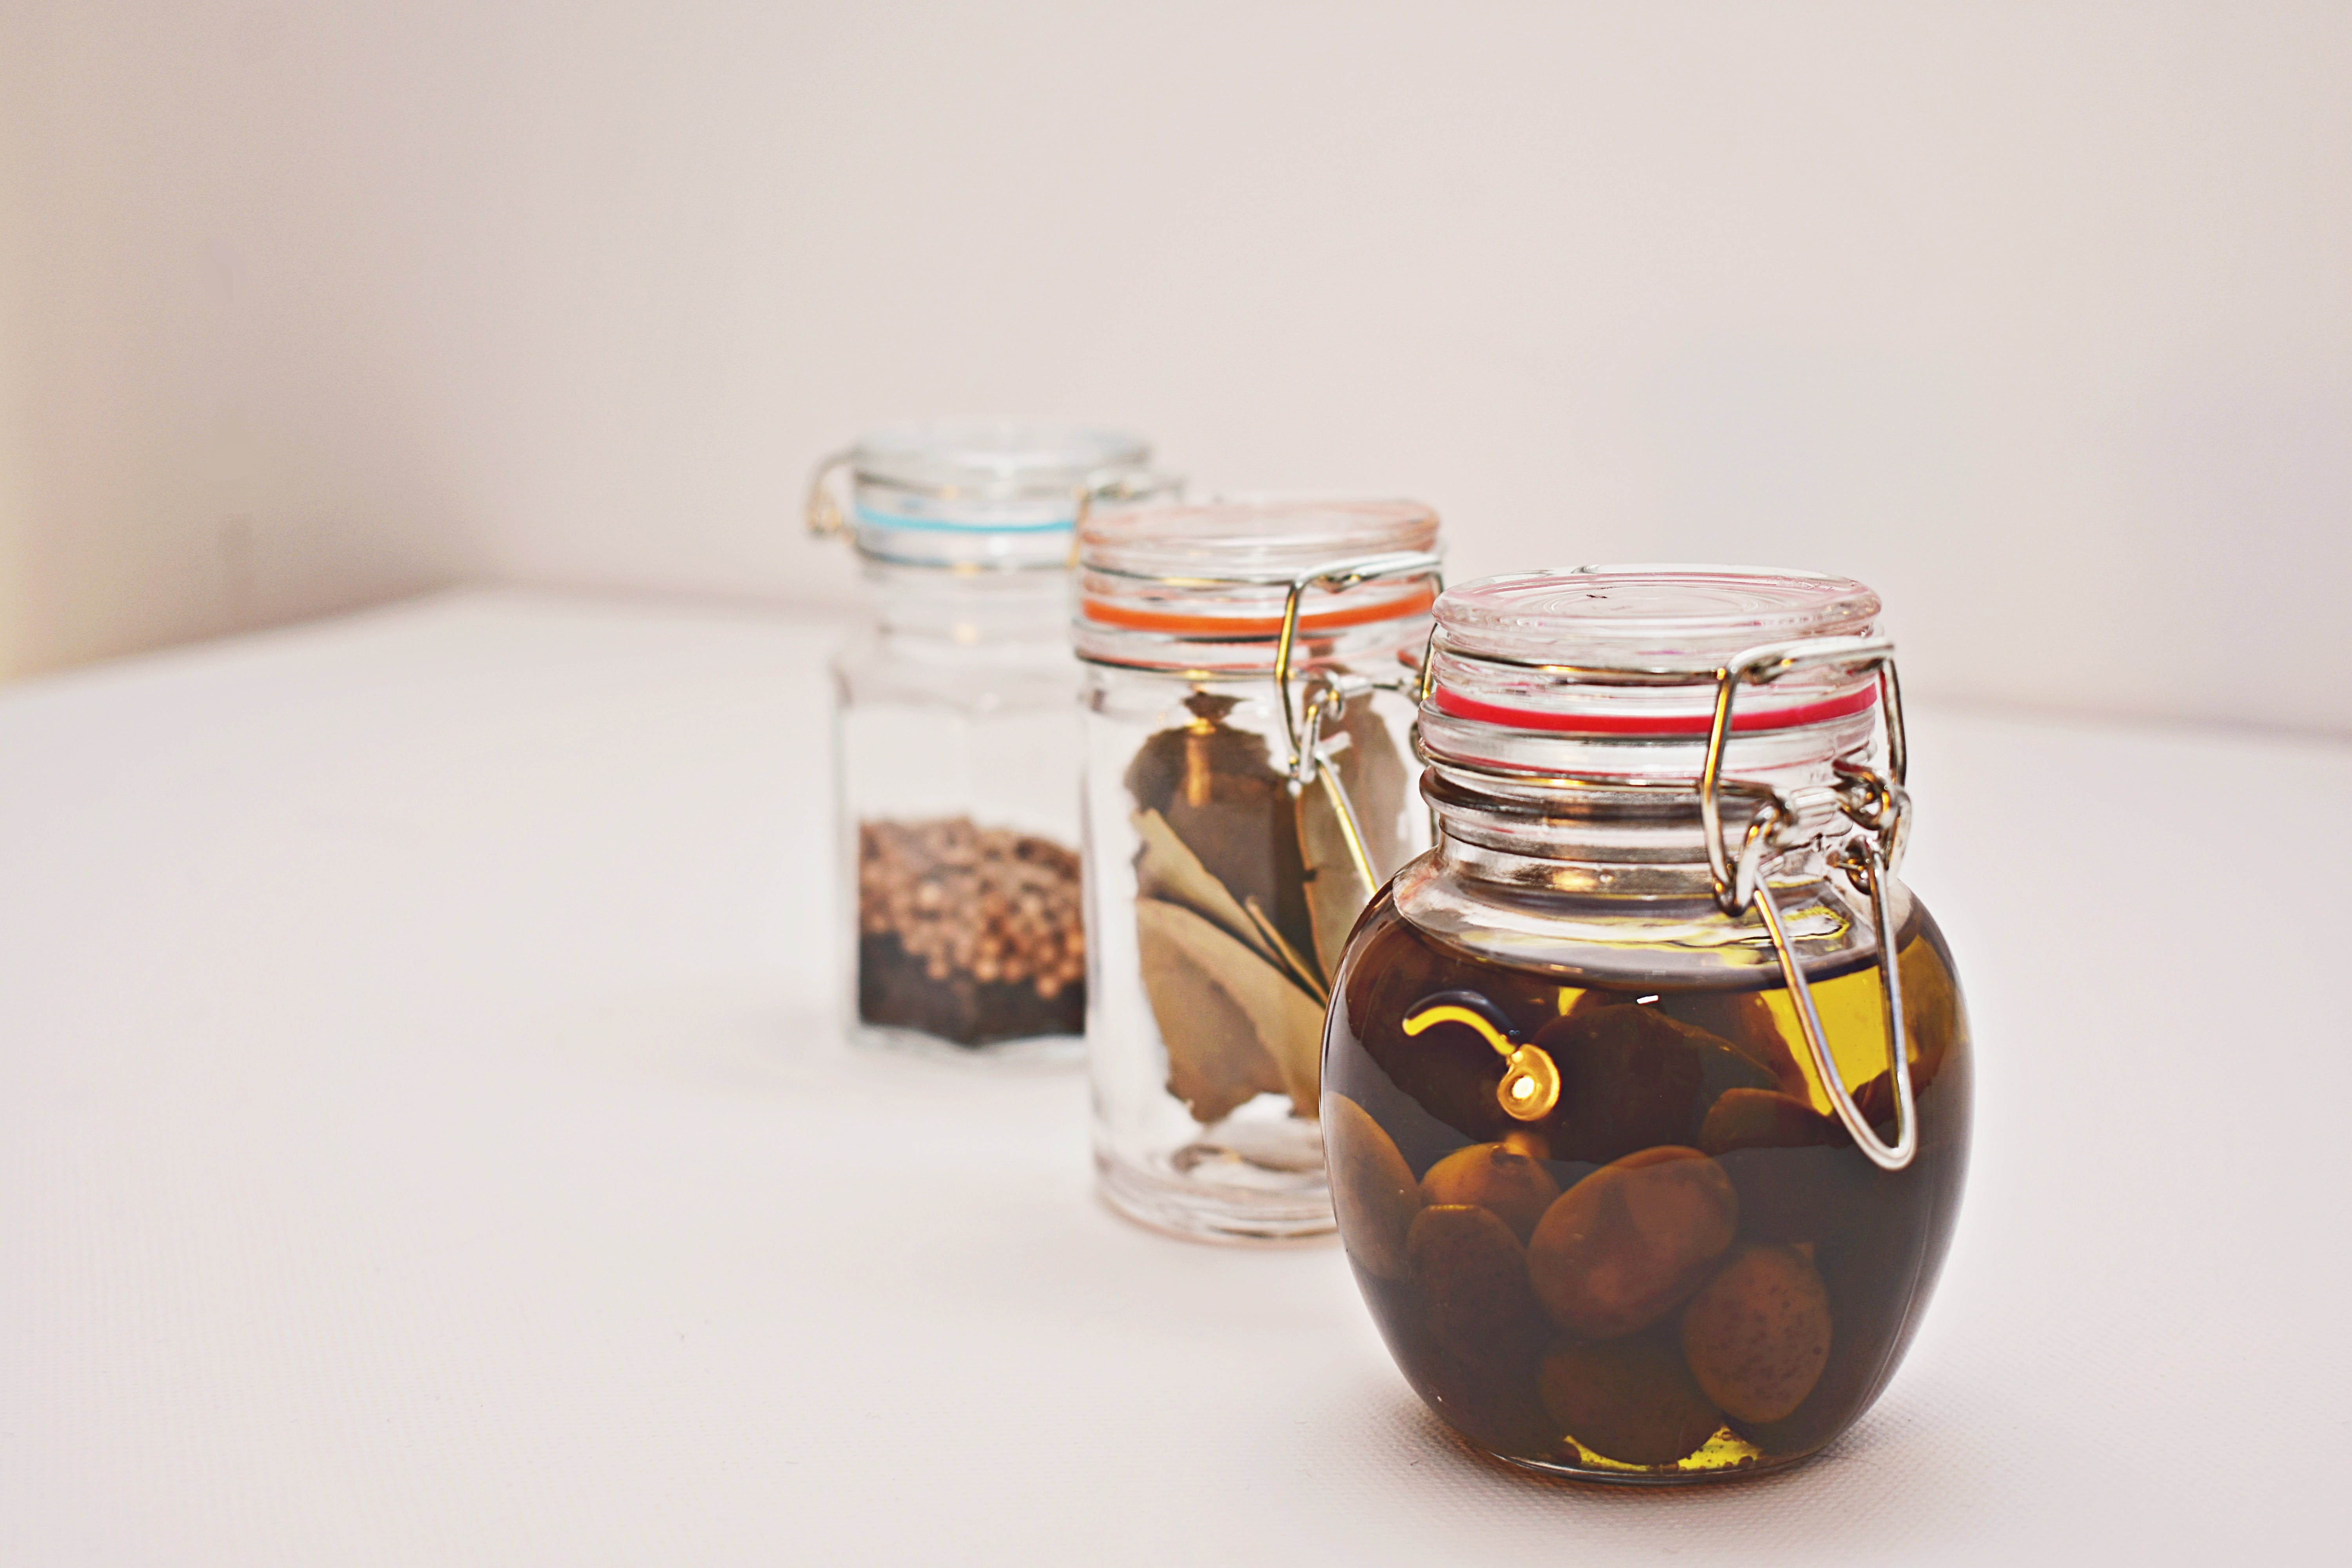 Three Clear Glass Jars on White Surface